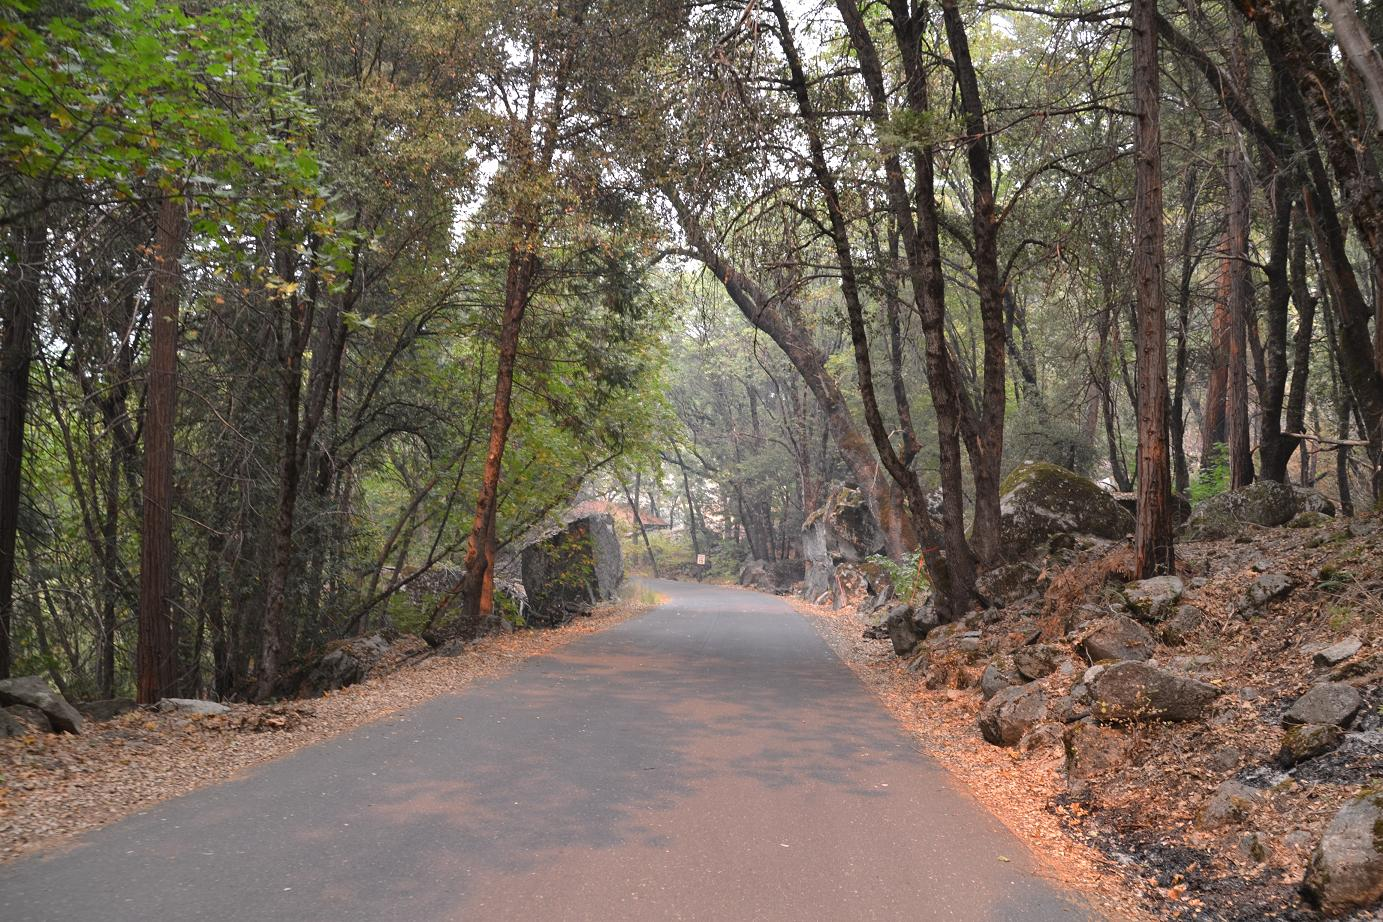 Forest canopy on Hetch Hetchy road - photo by Gina Clugston